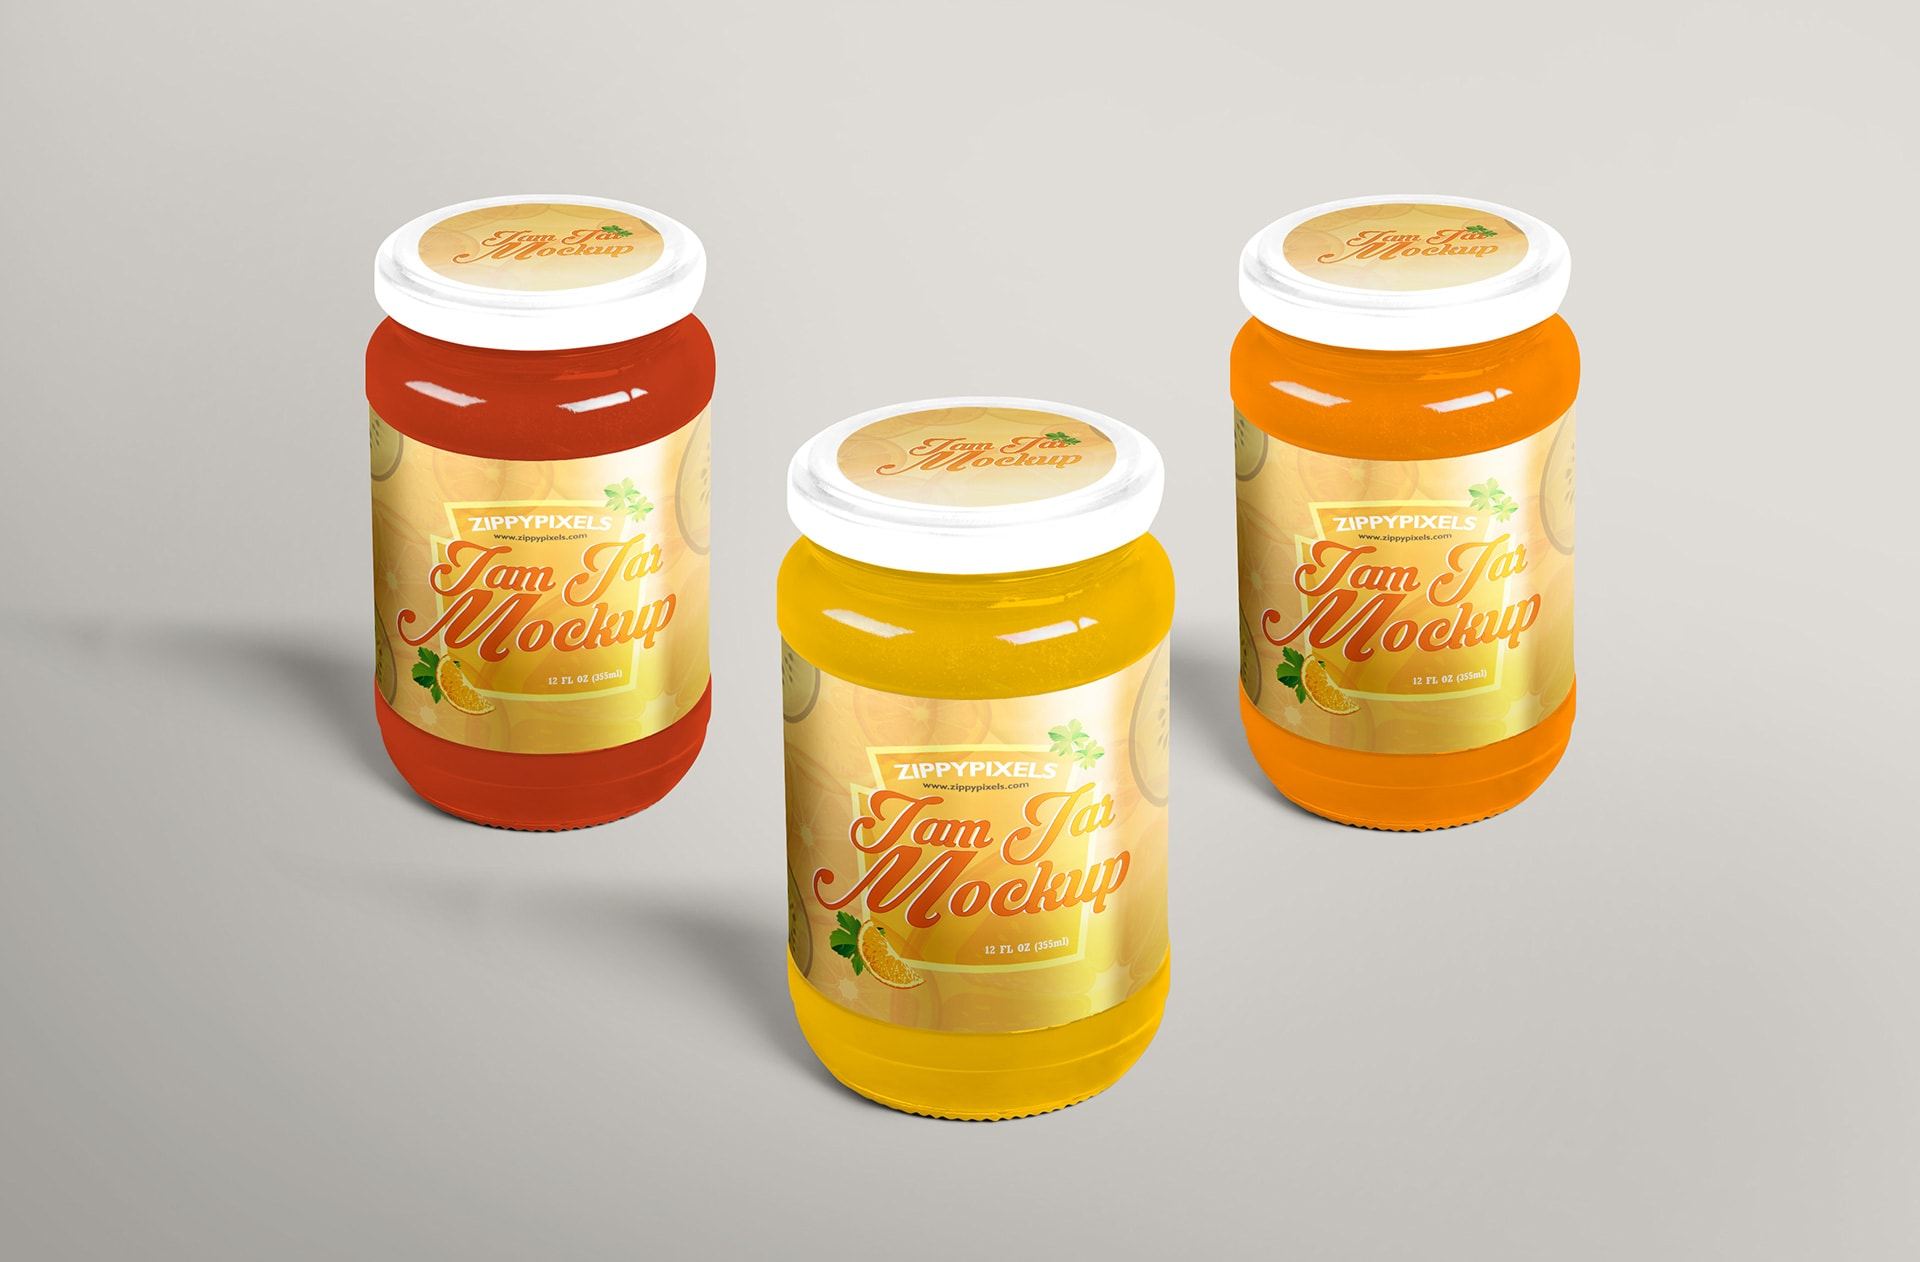 jam jar mockup for labelling designs